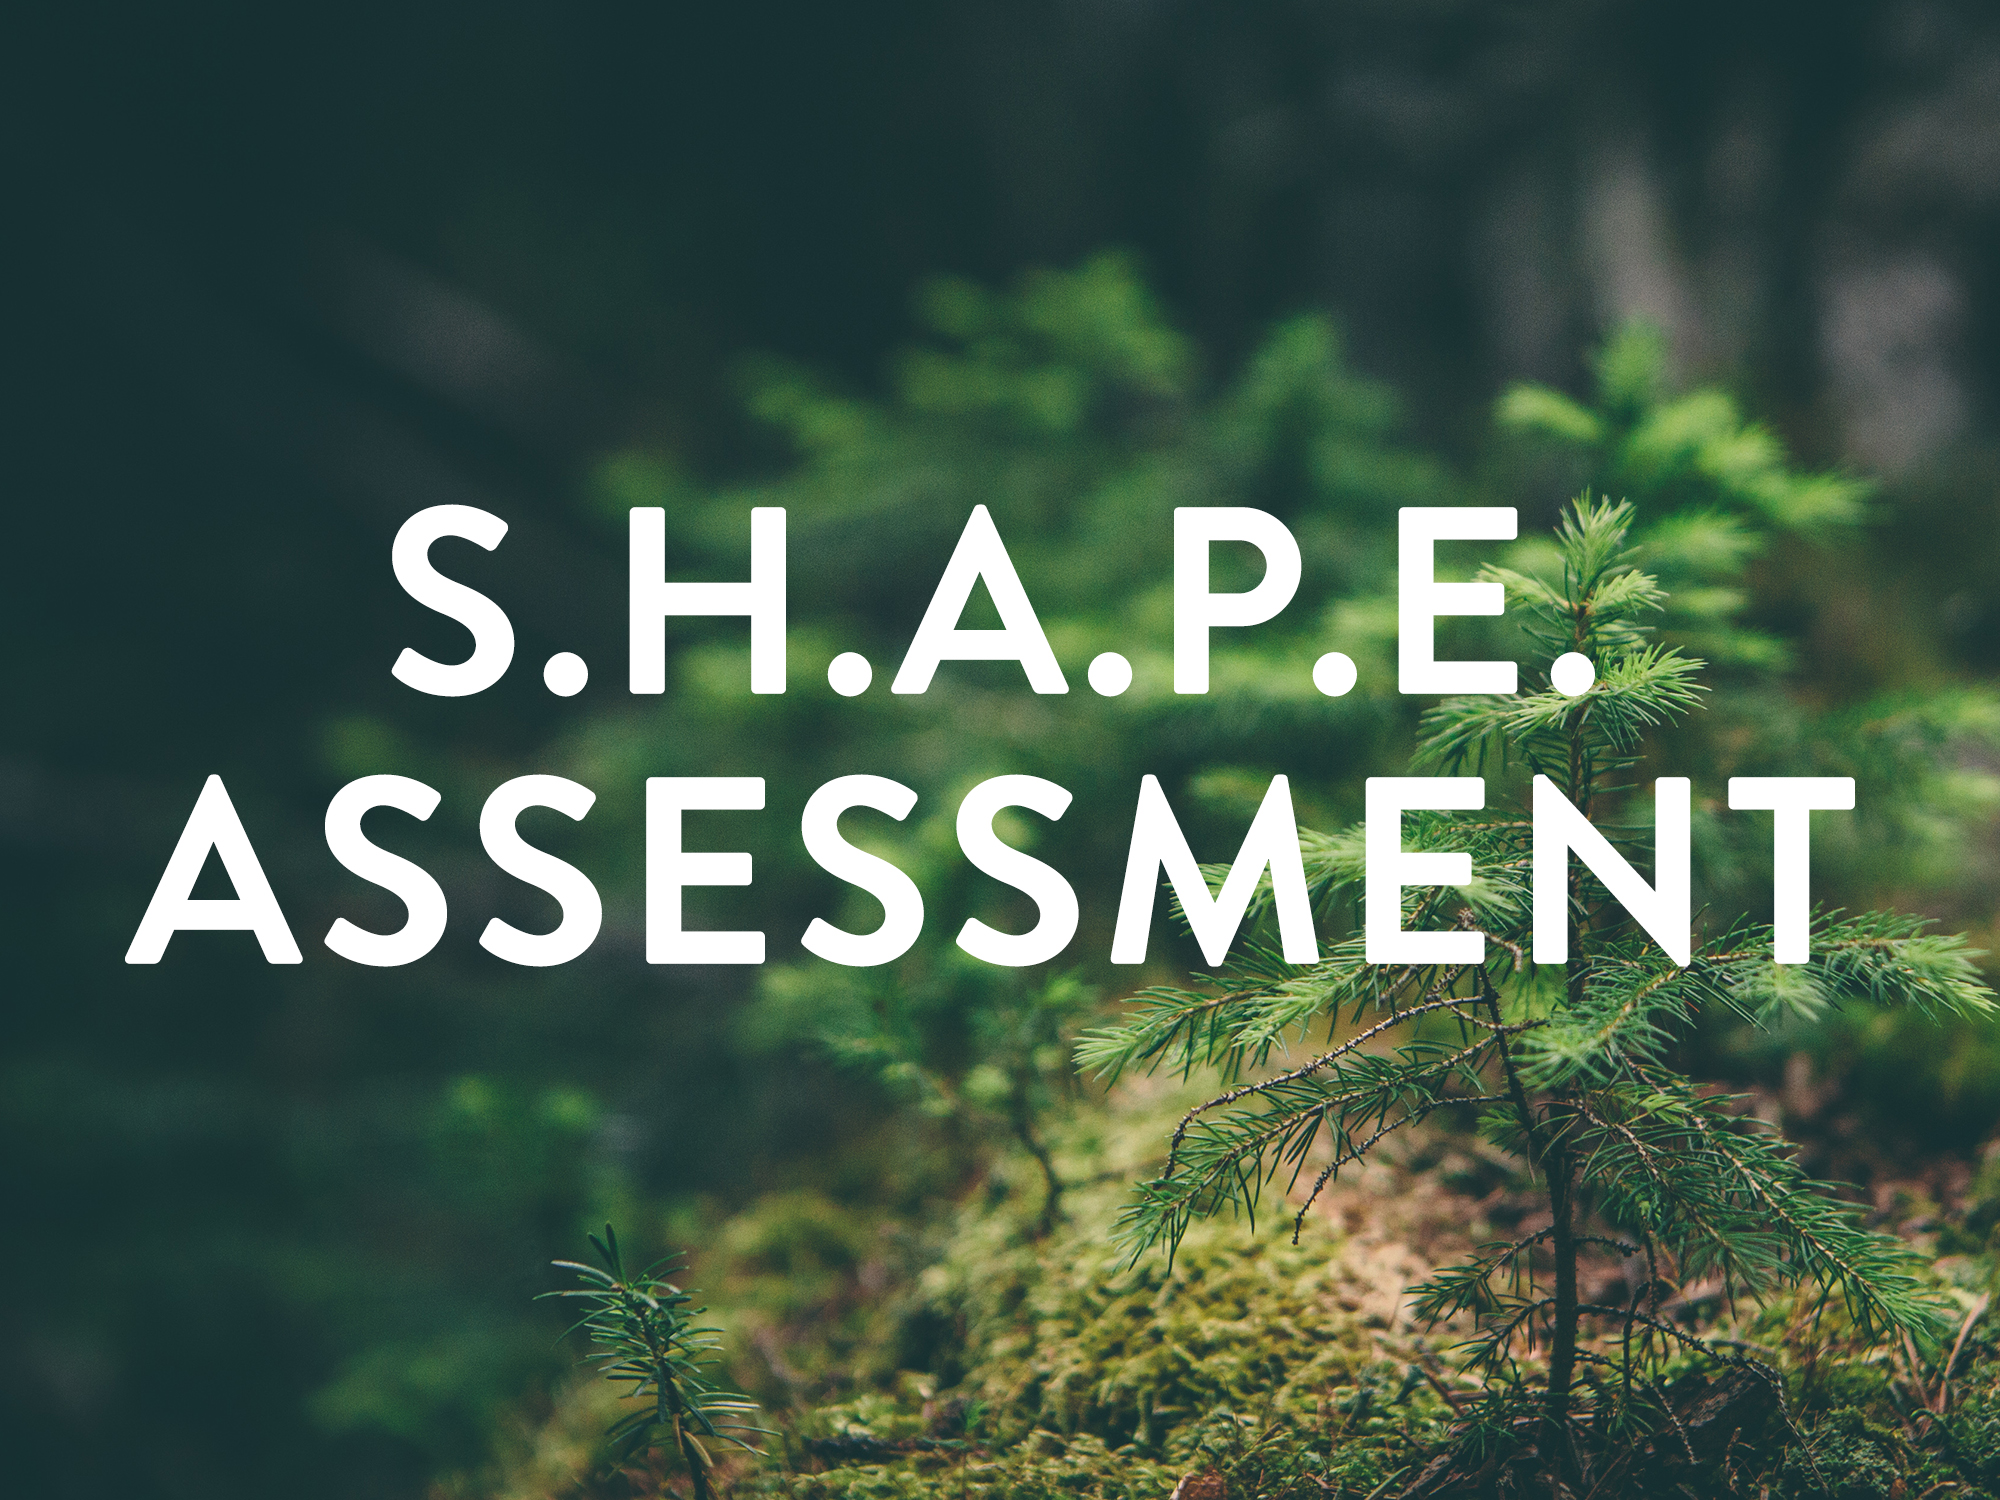 shape assessment.jpg